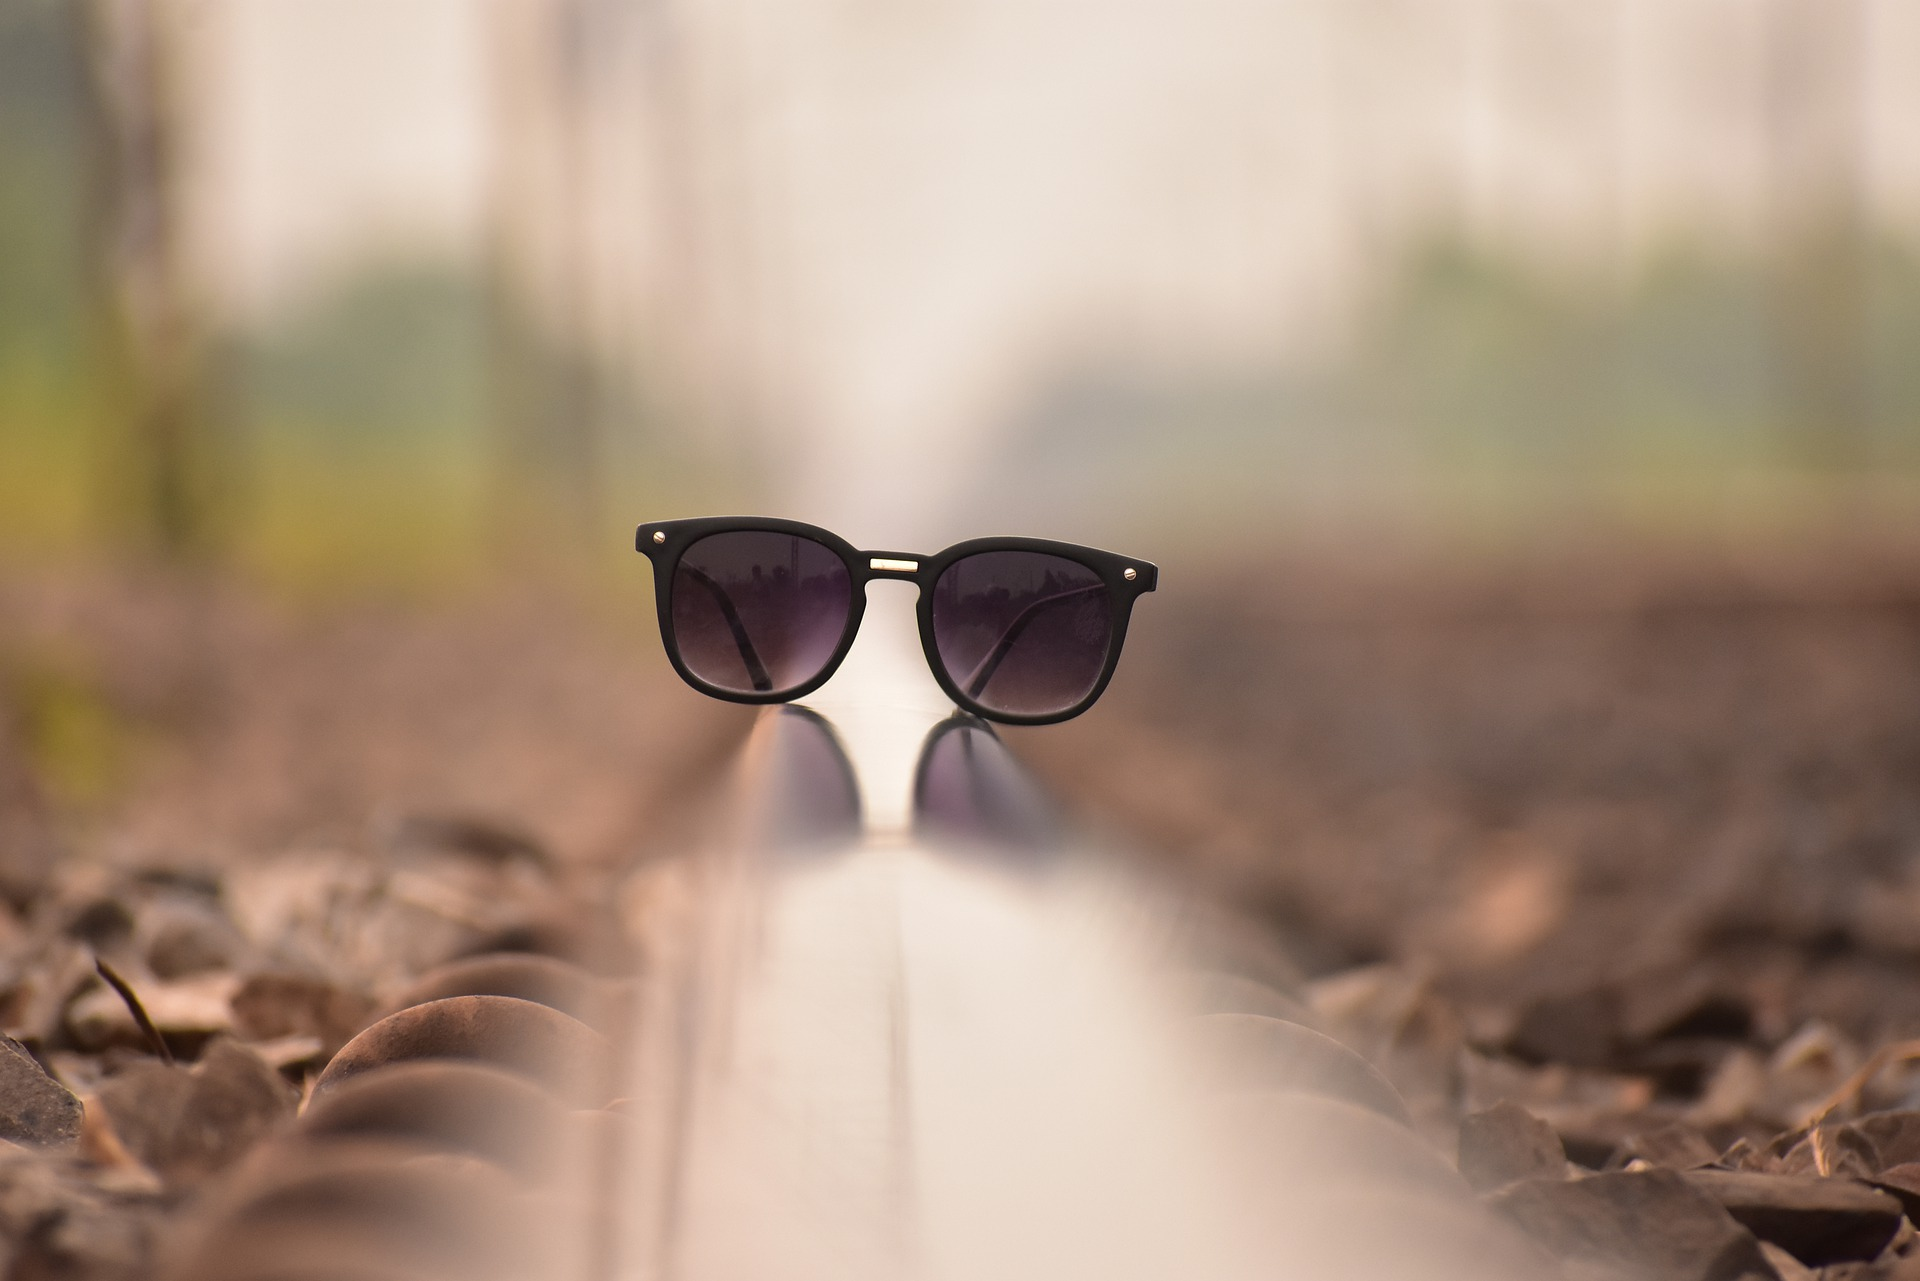 Sunglasses Product Photography Helps Sell More Frames